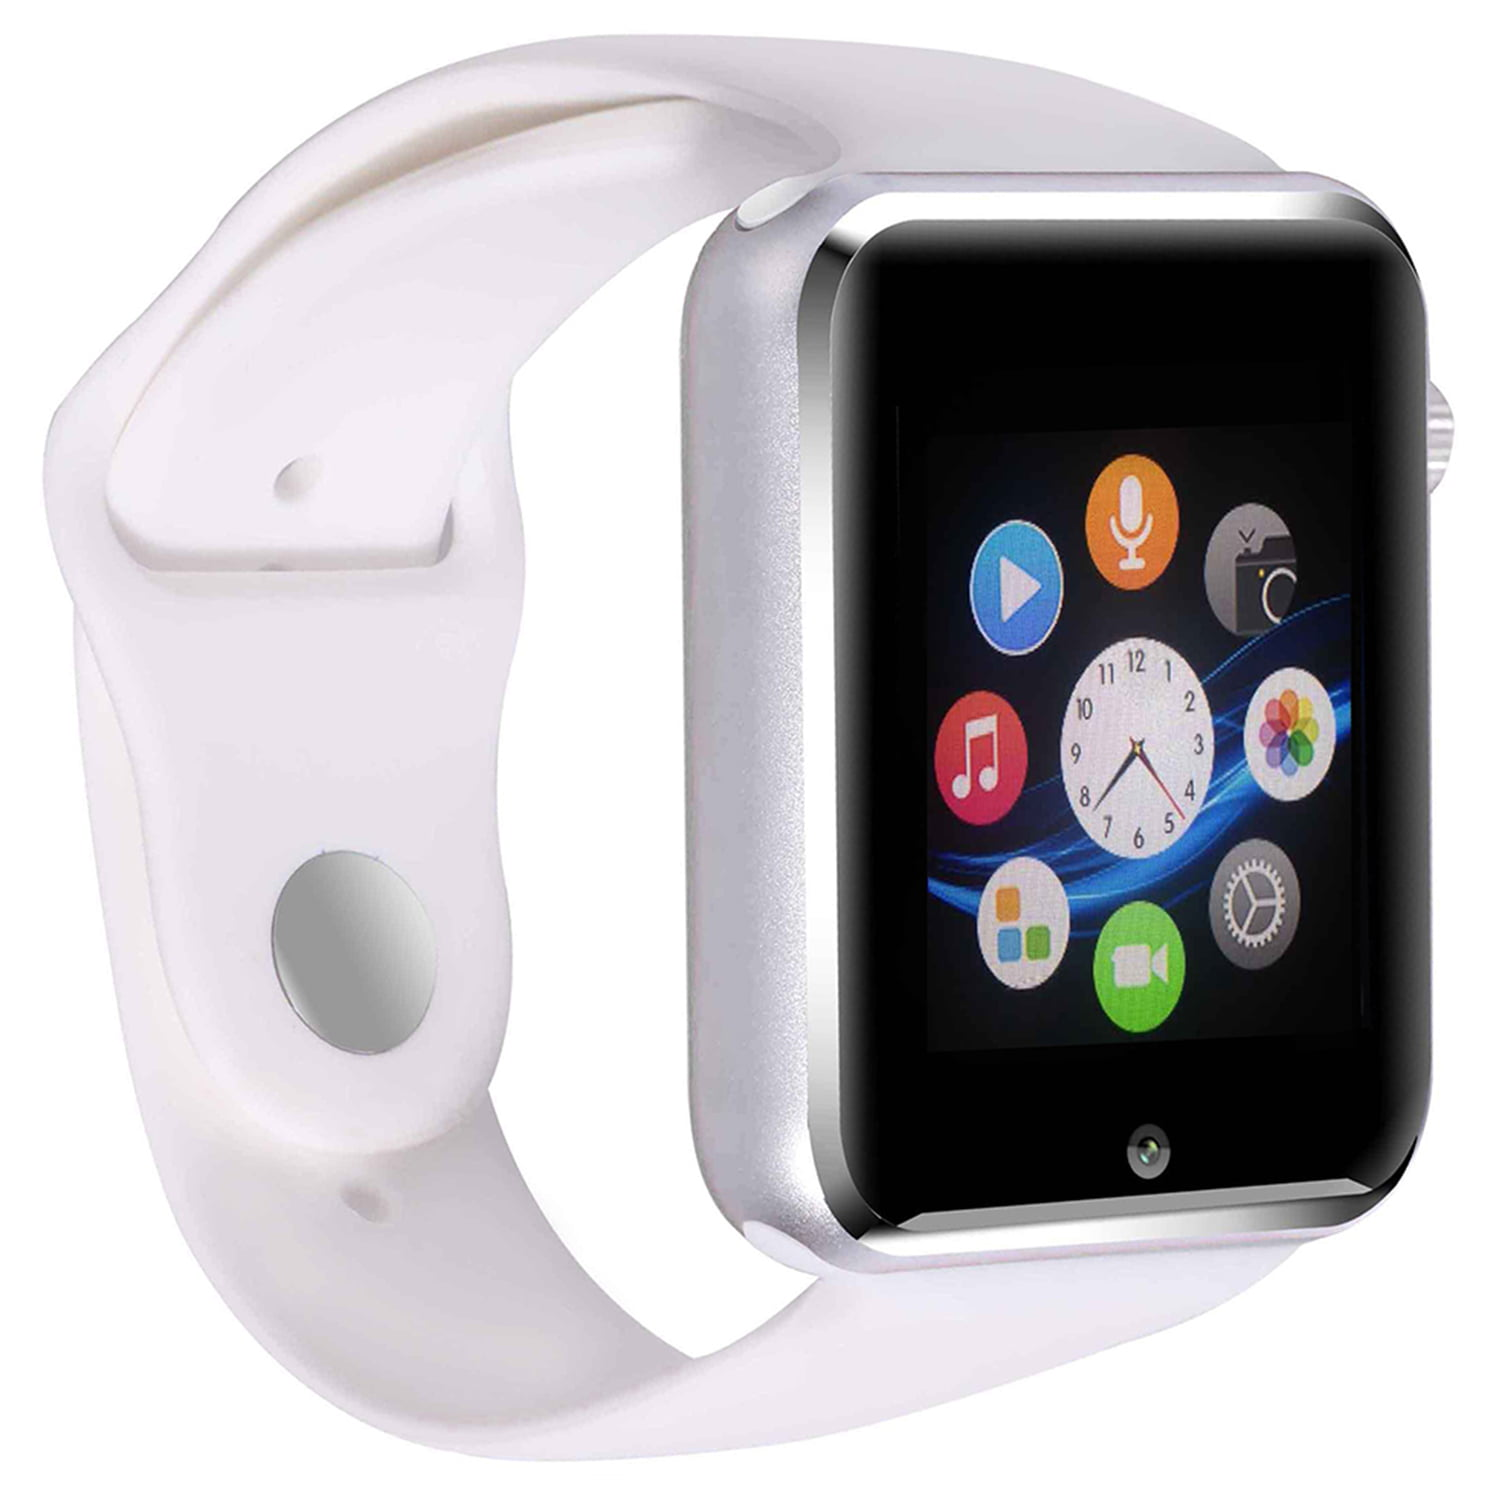 apple watch s cellular call time on mobile phone first with hands lte smartwatch watches